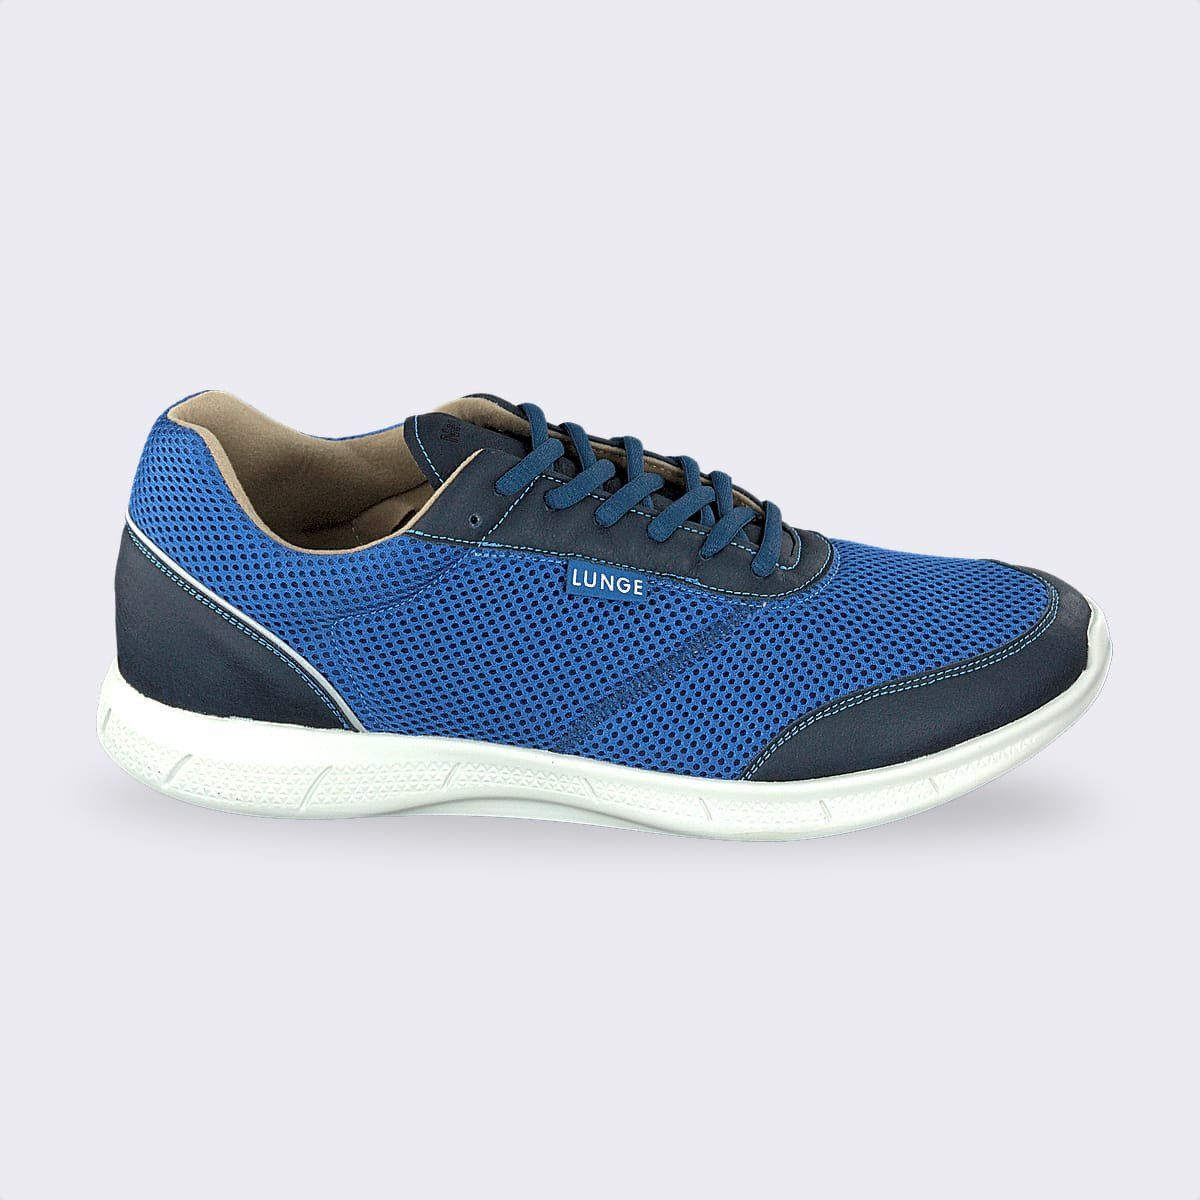 Lunge Neo Run in Midnightblue Navy